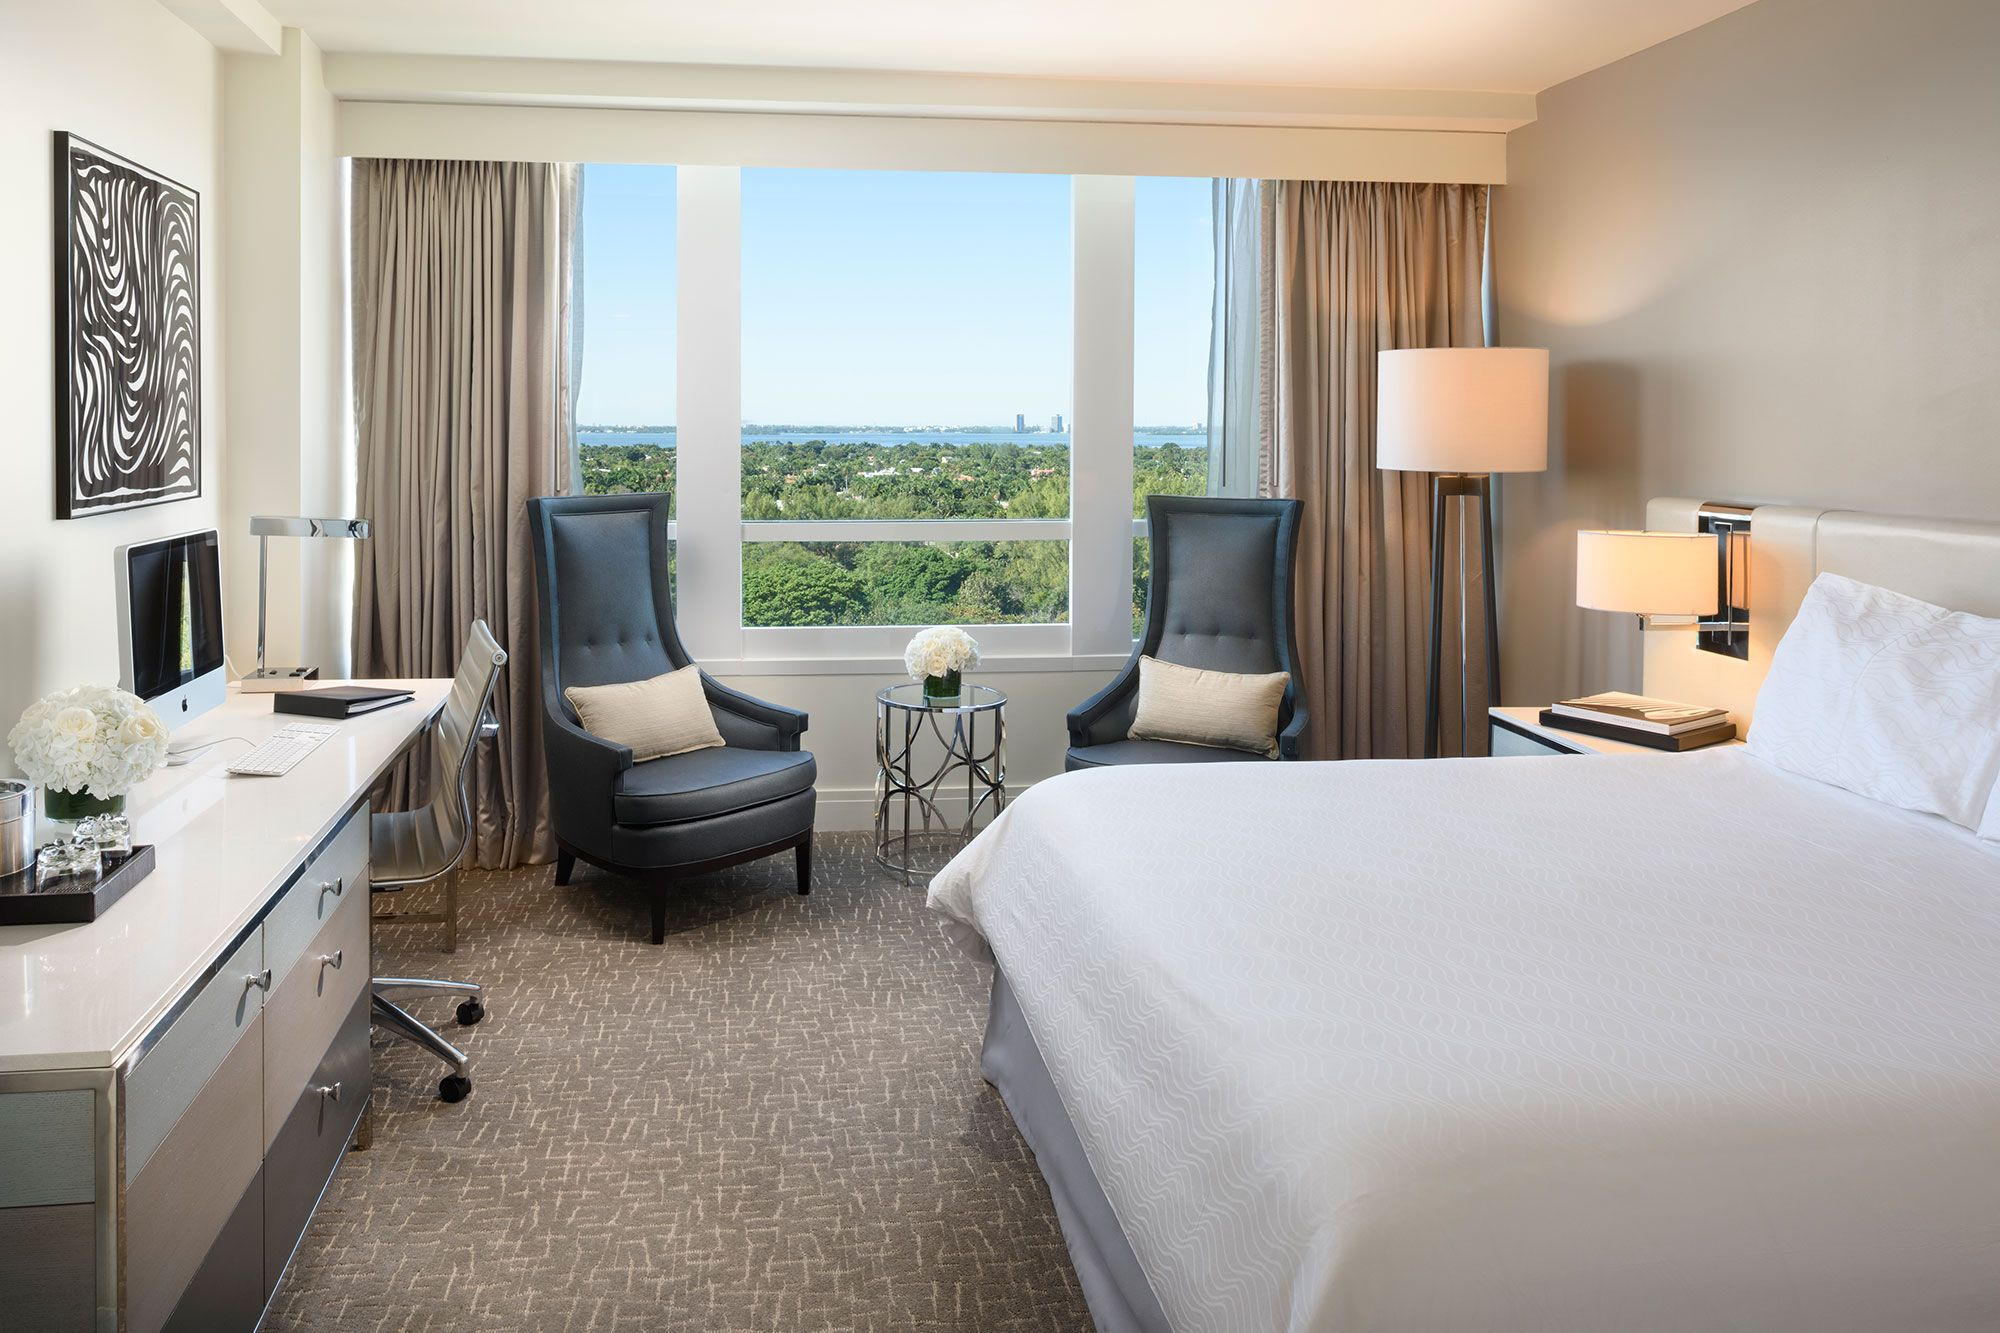 Deluxe Bay View Guestroom Fontainebleau Beach Hotel Room Miami Beach Hotels Hotels Room